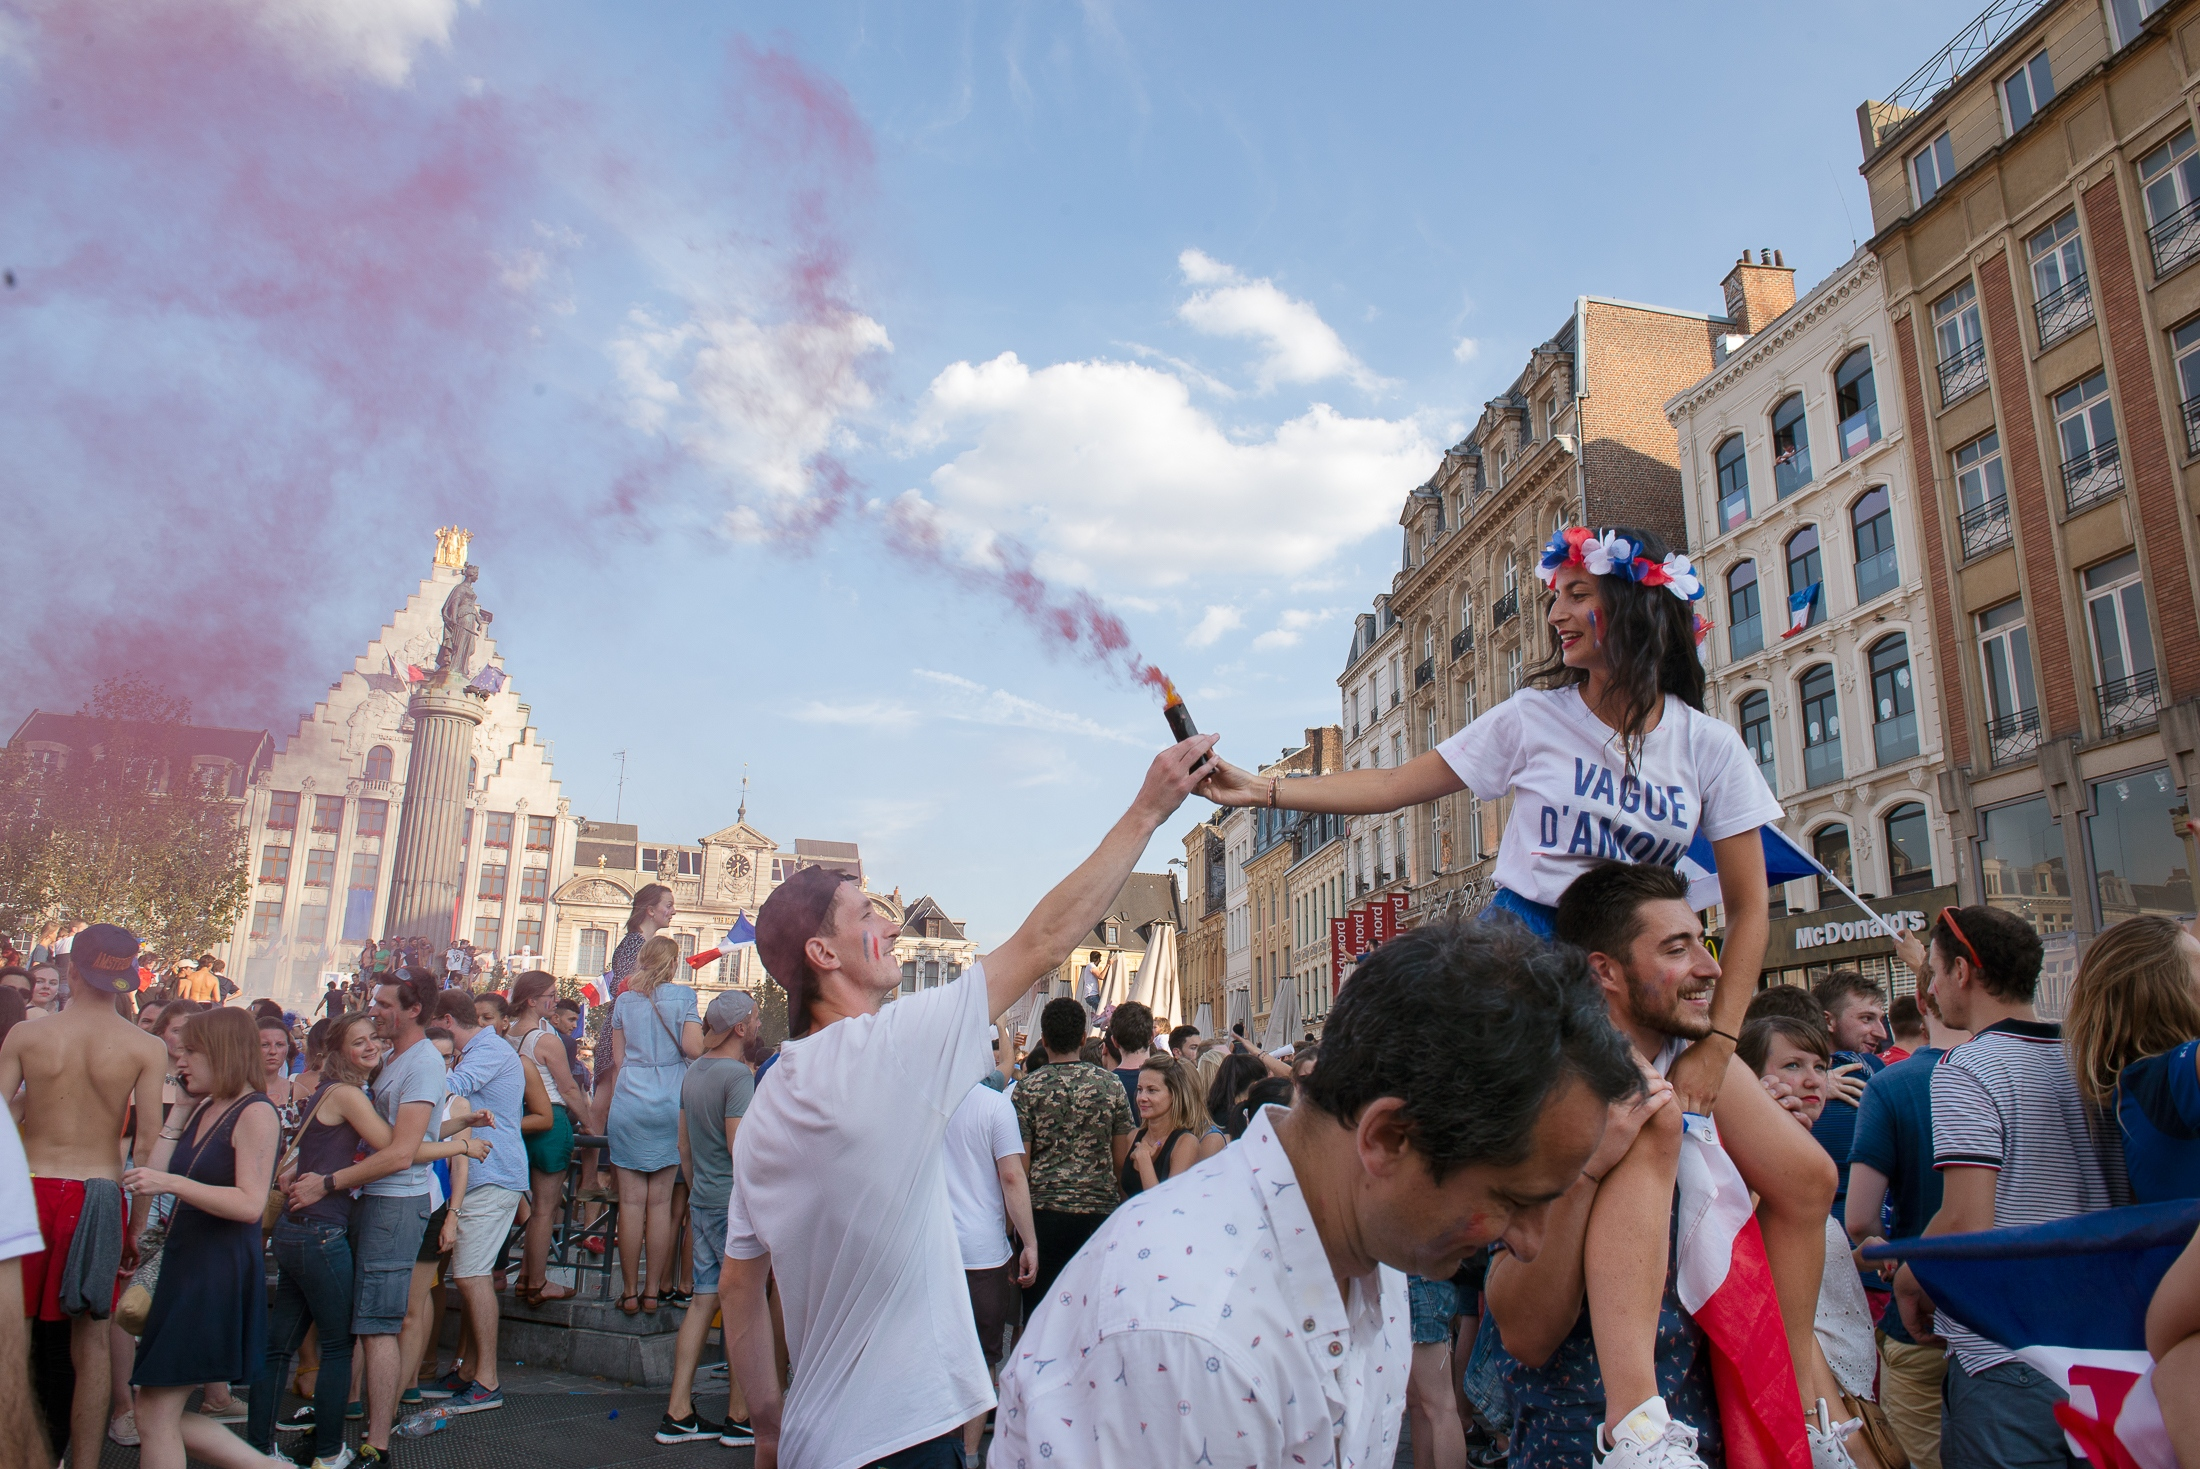 July 15, 2018 - Lille, France. People gathered in the street after the French soccer team won the FIFA World Cup.